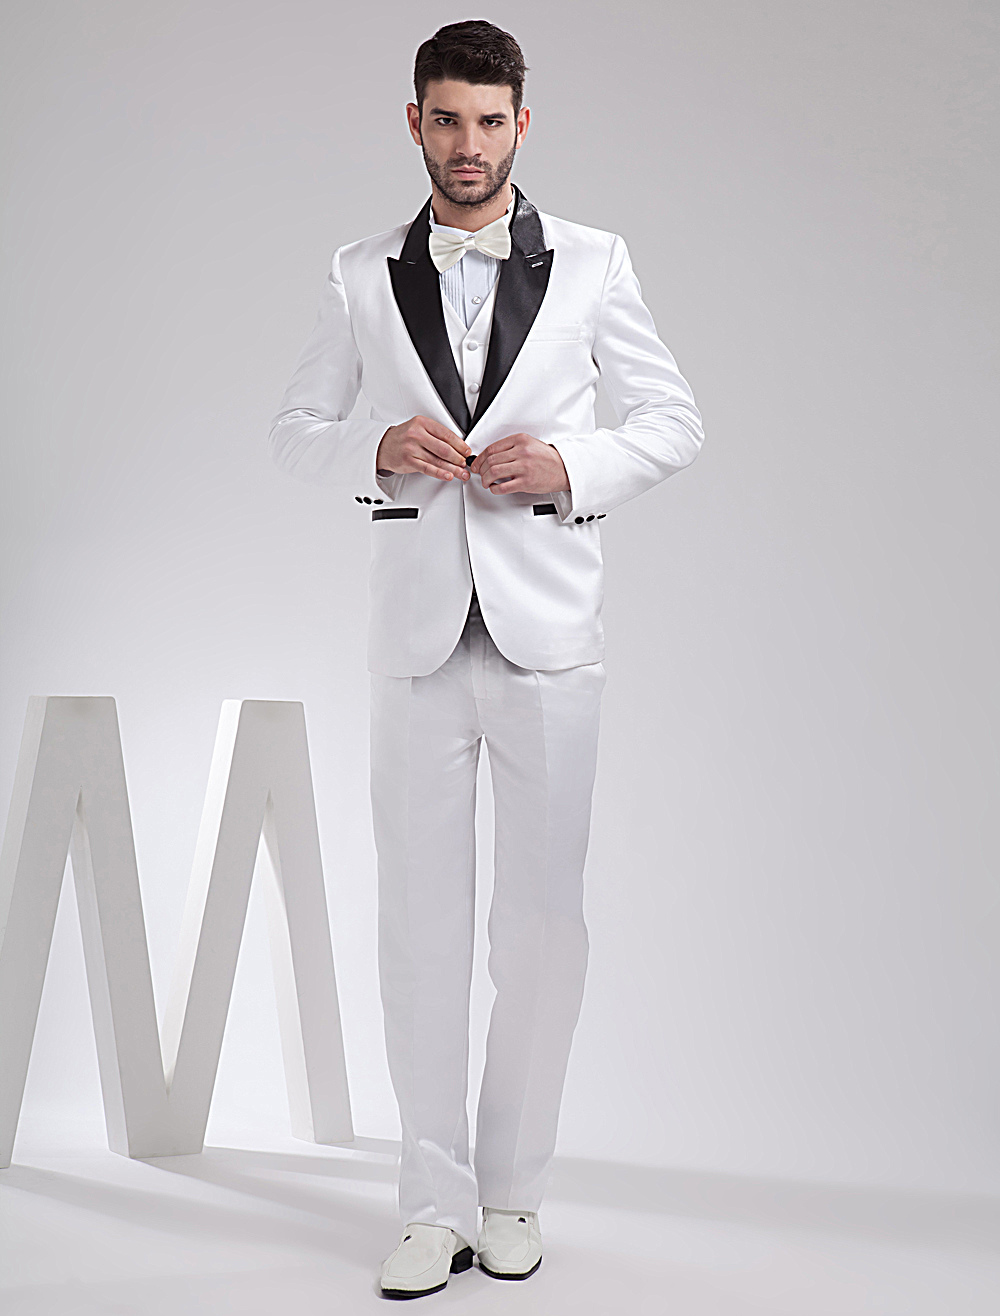 Cool White Satin Groom Wedding Tuxedo